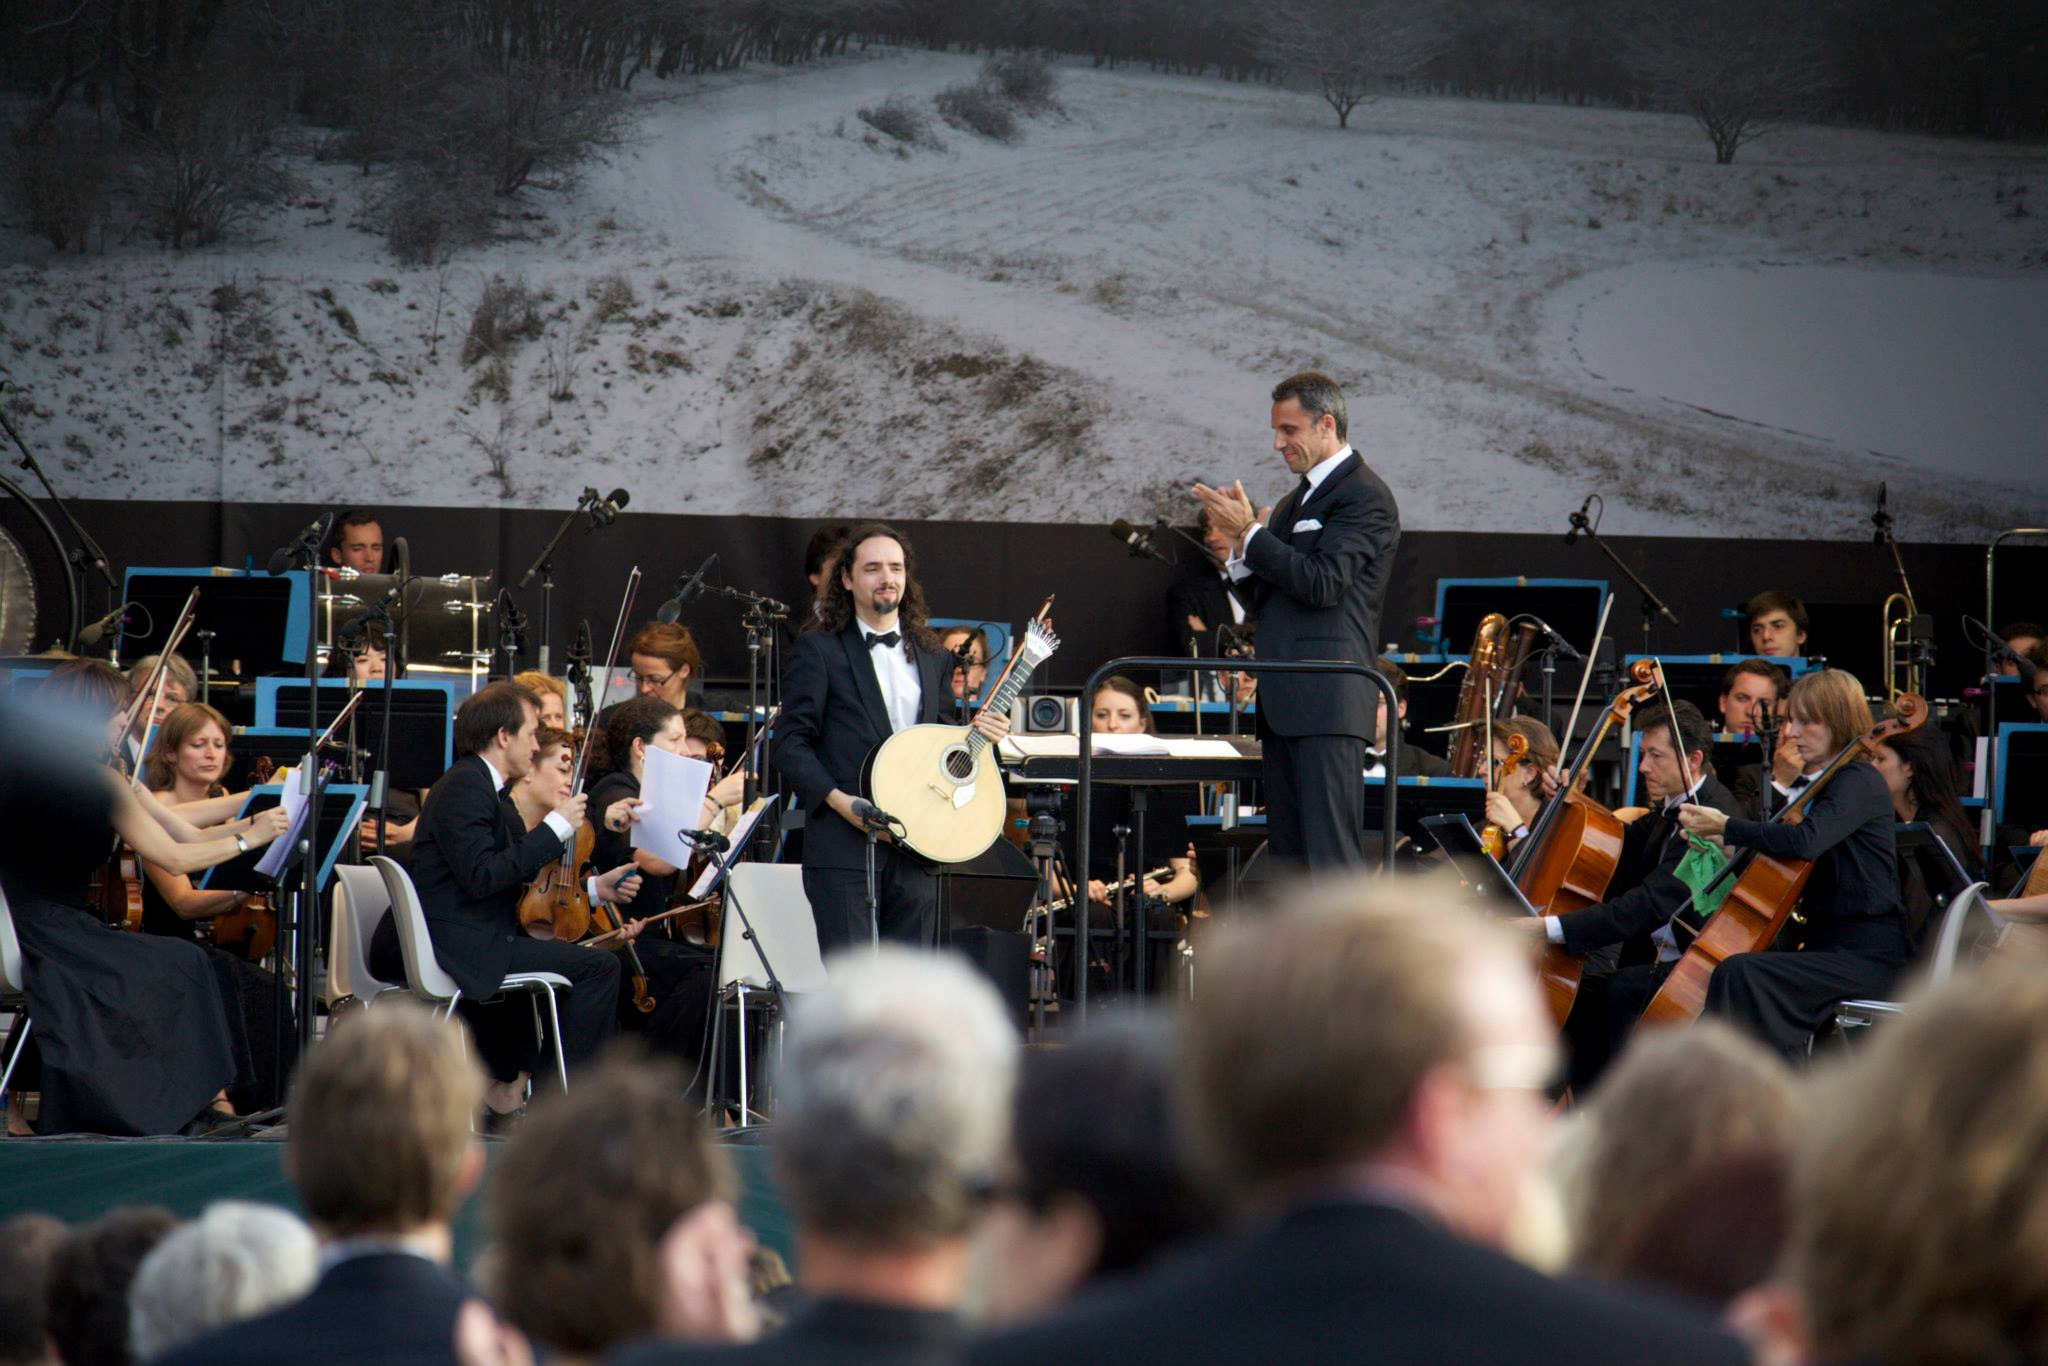 da Silva performing with Orchestre Lamoureux at the Jardin des Tuileries of the Louvre Museum in Paris